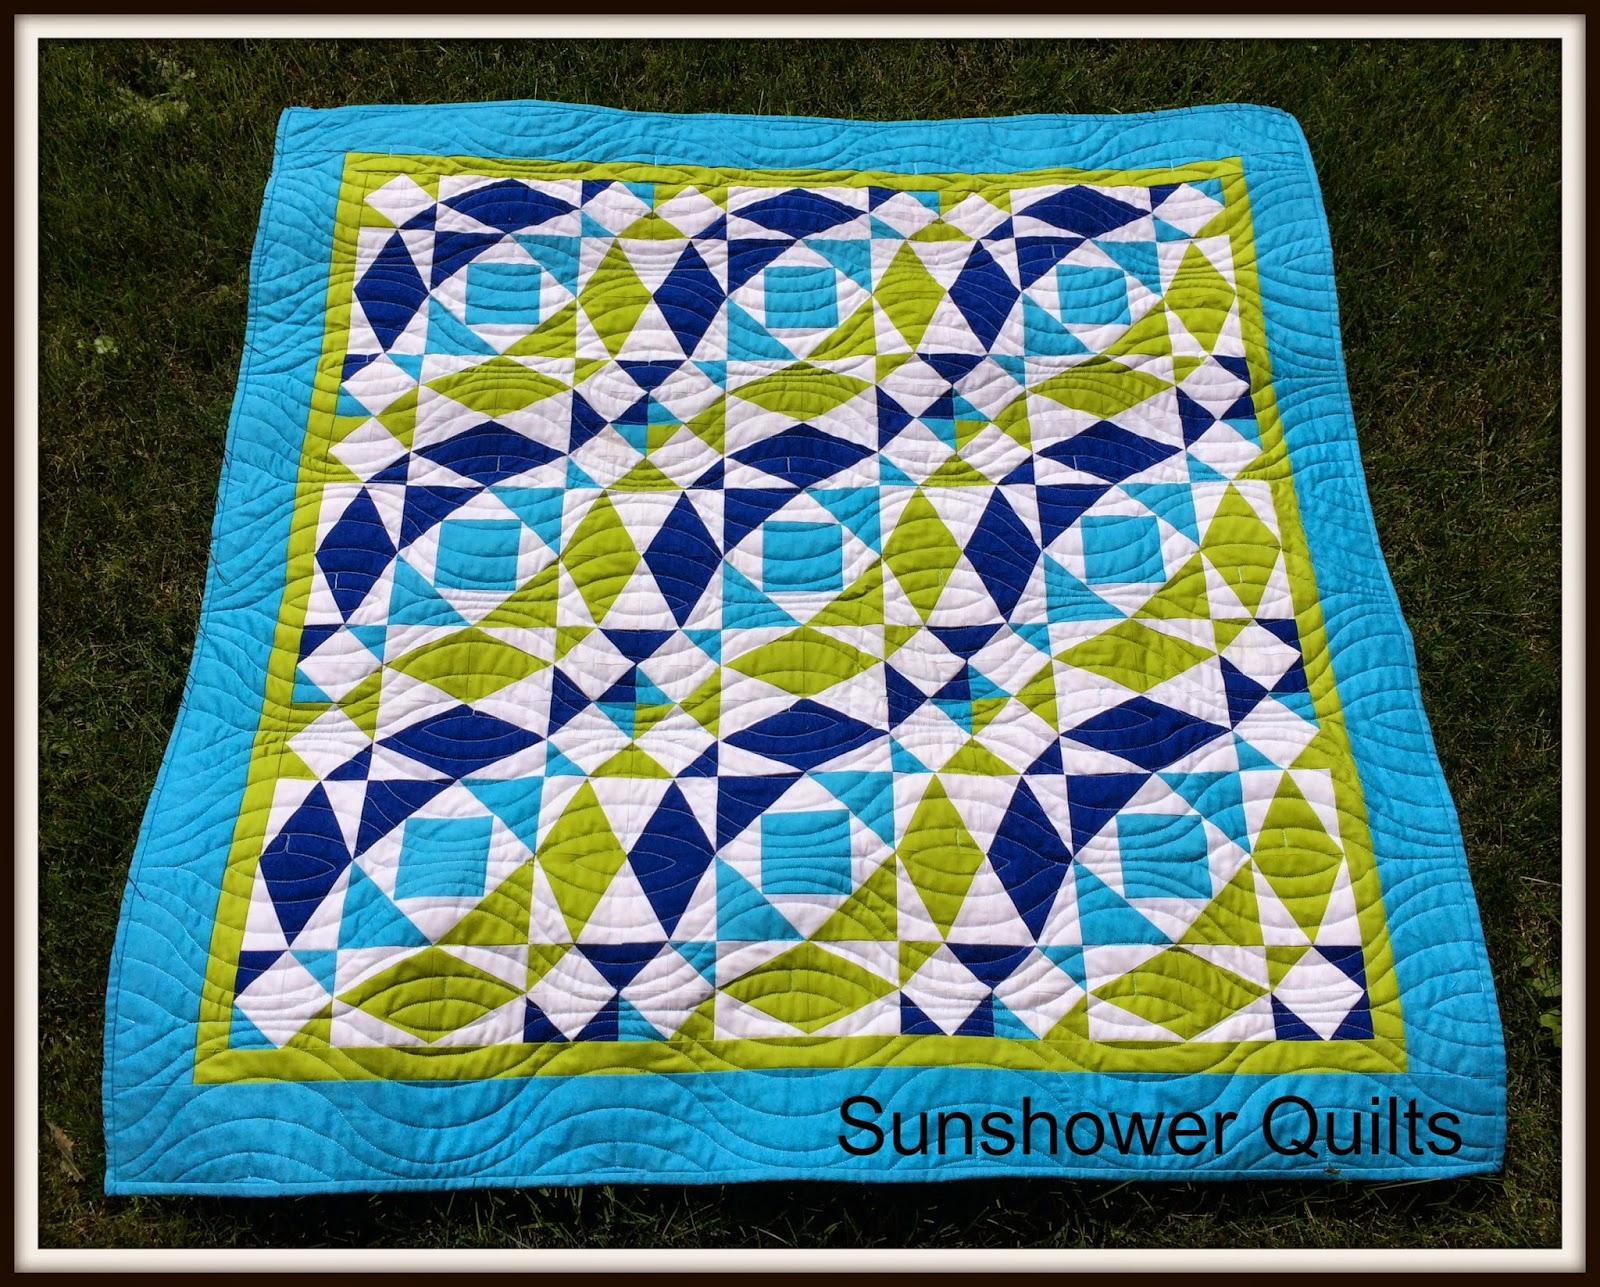 Sunshower quilts storm at sea for Storm at sea quilt template